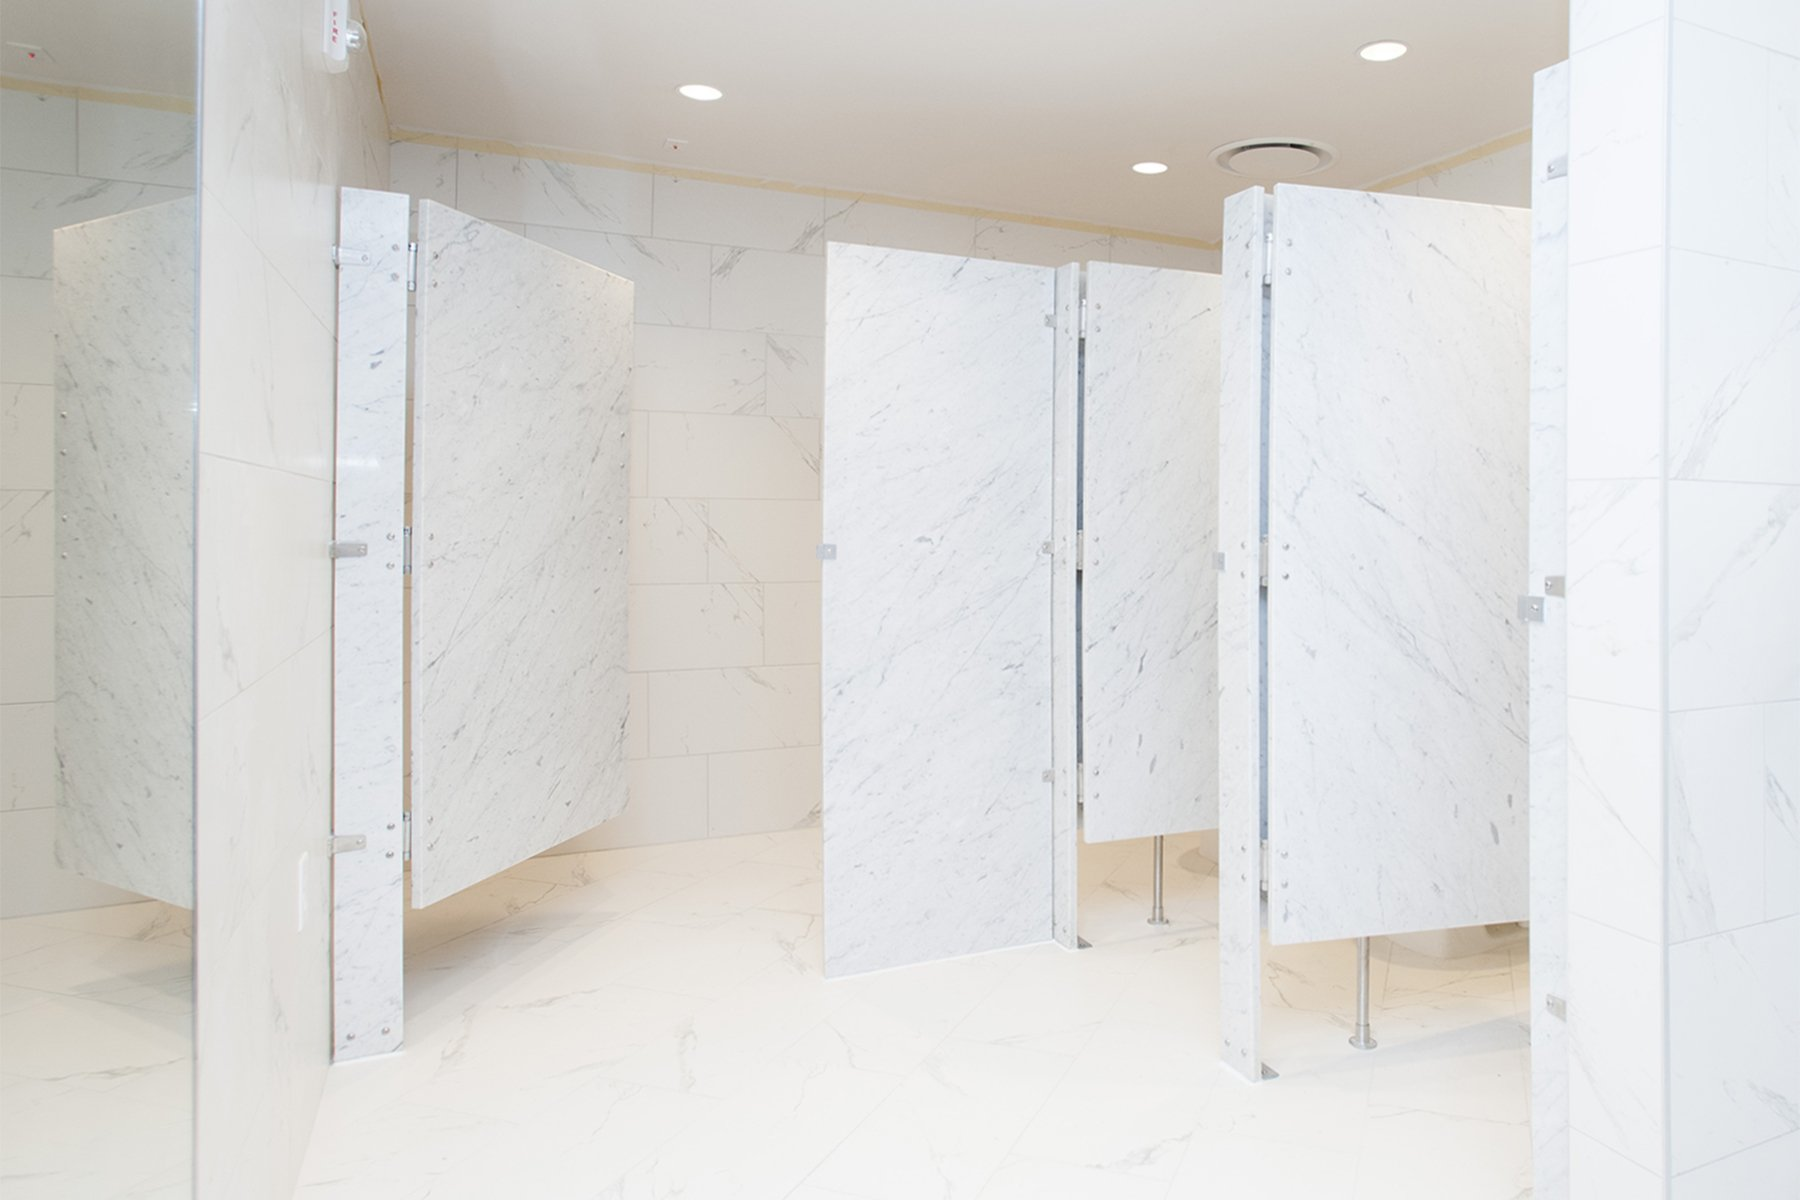 Gallery StonePly - Used bathroom stalls for sale